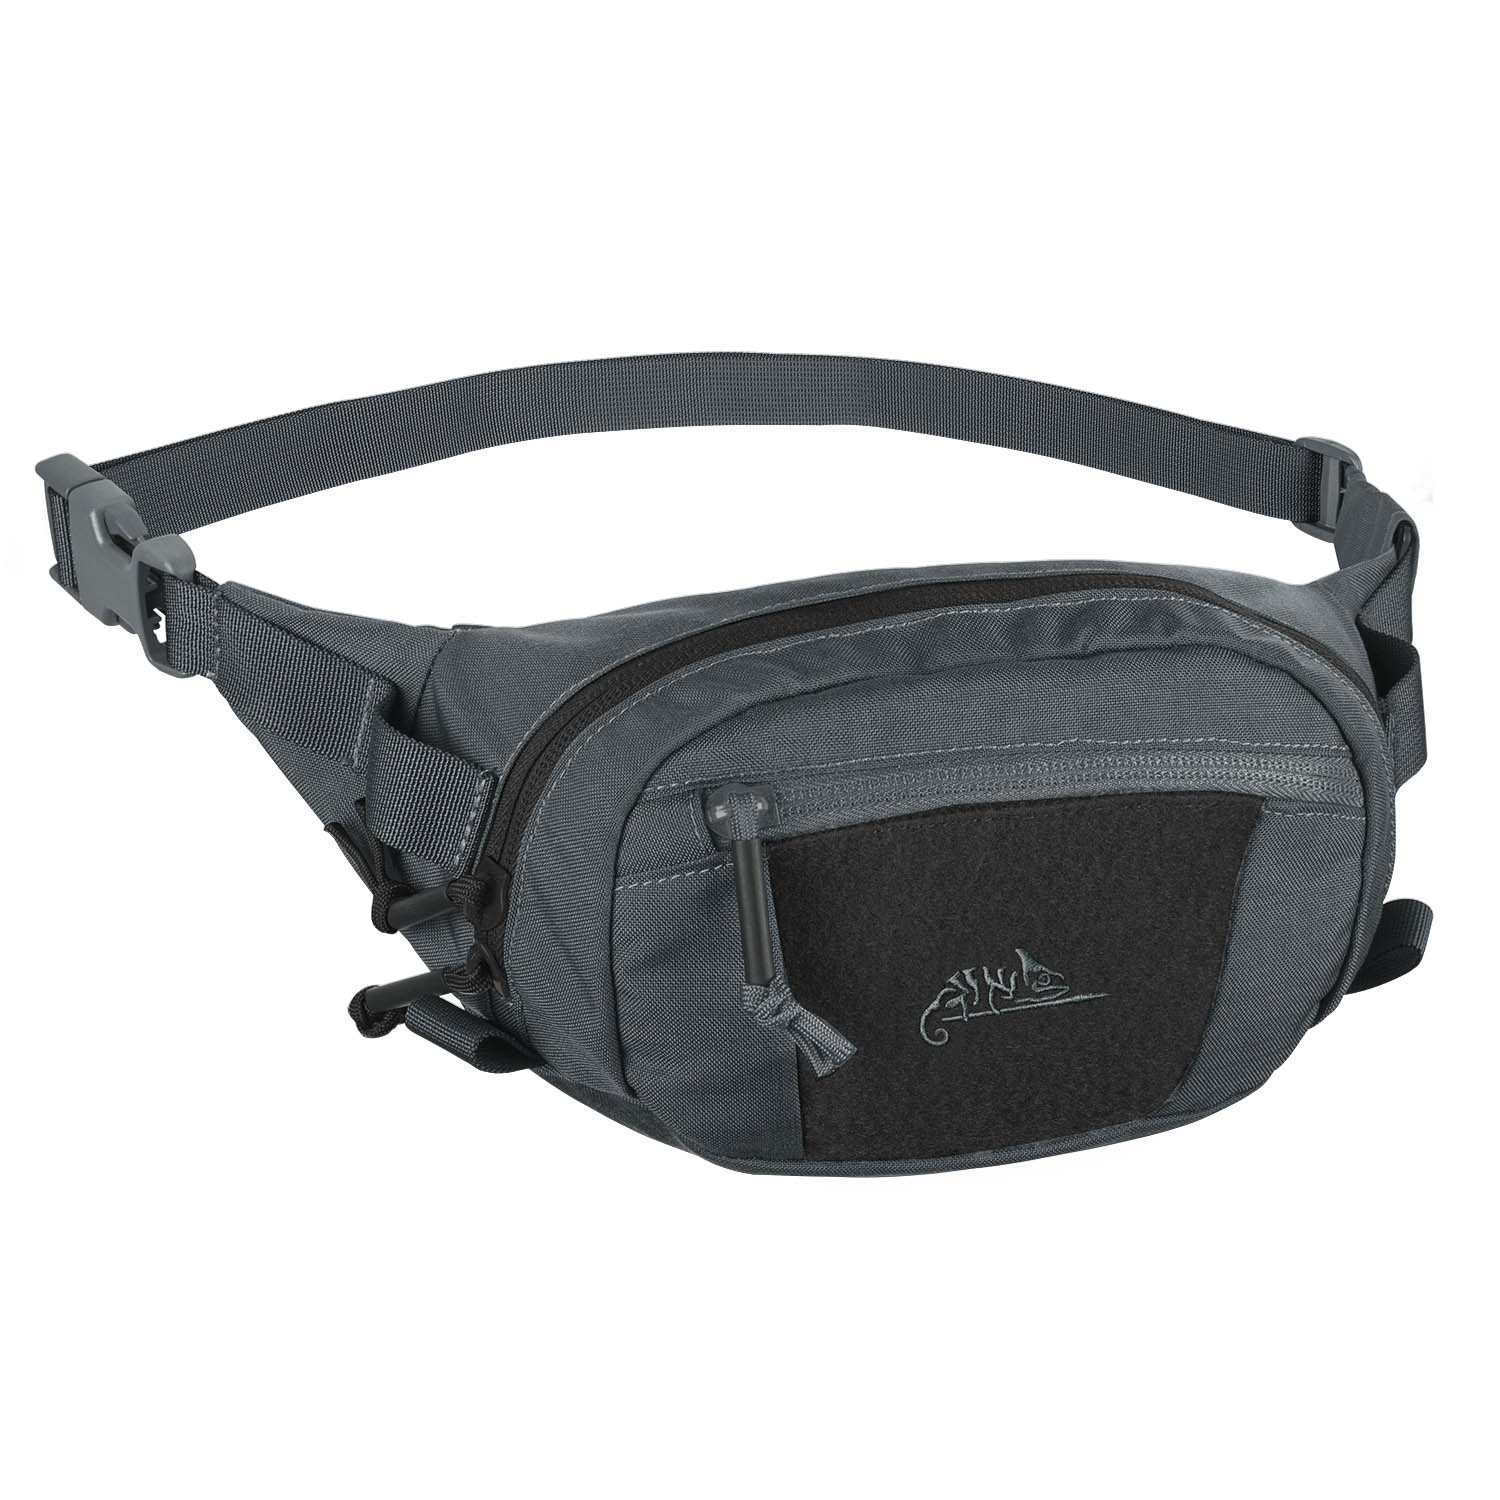 Túi Bao Tử POSSUM WAIST PACK® – CORDURA®- Shadow Grey / Black